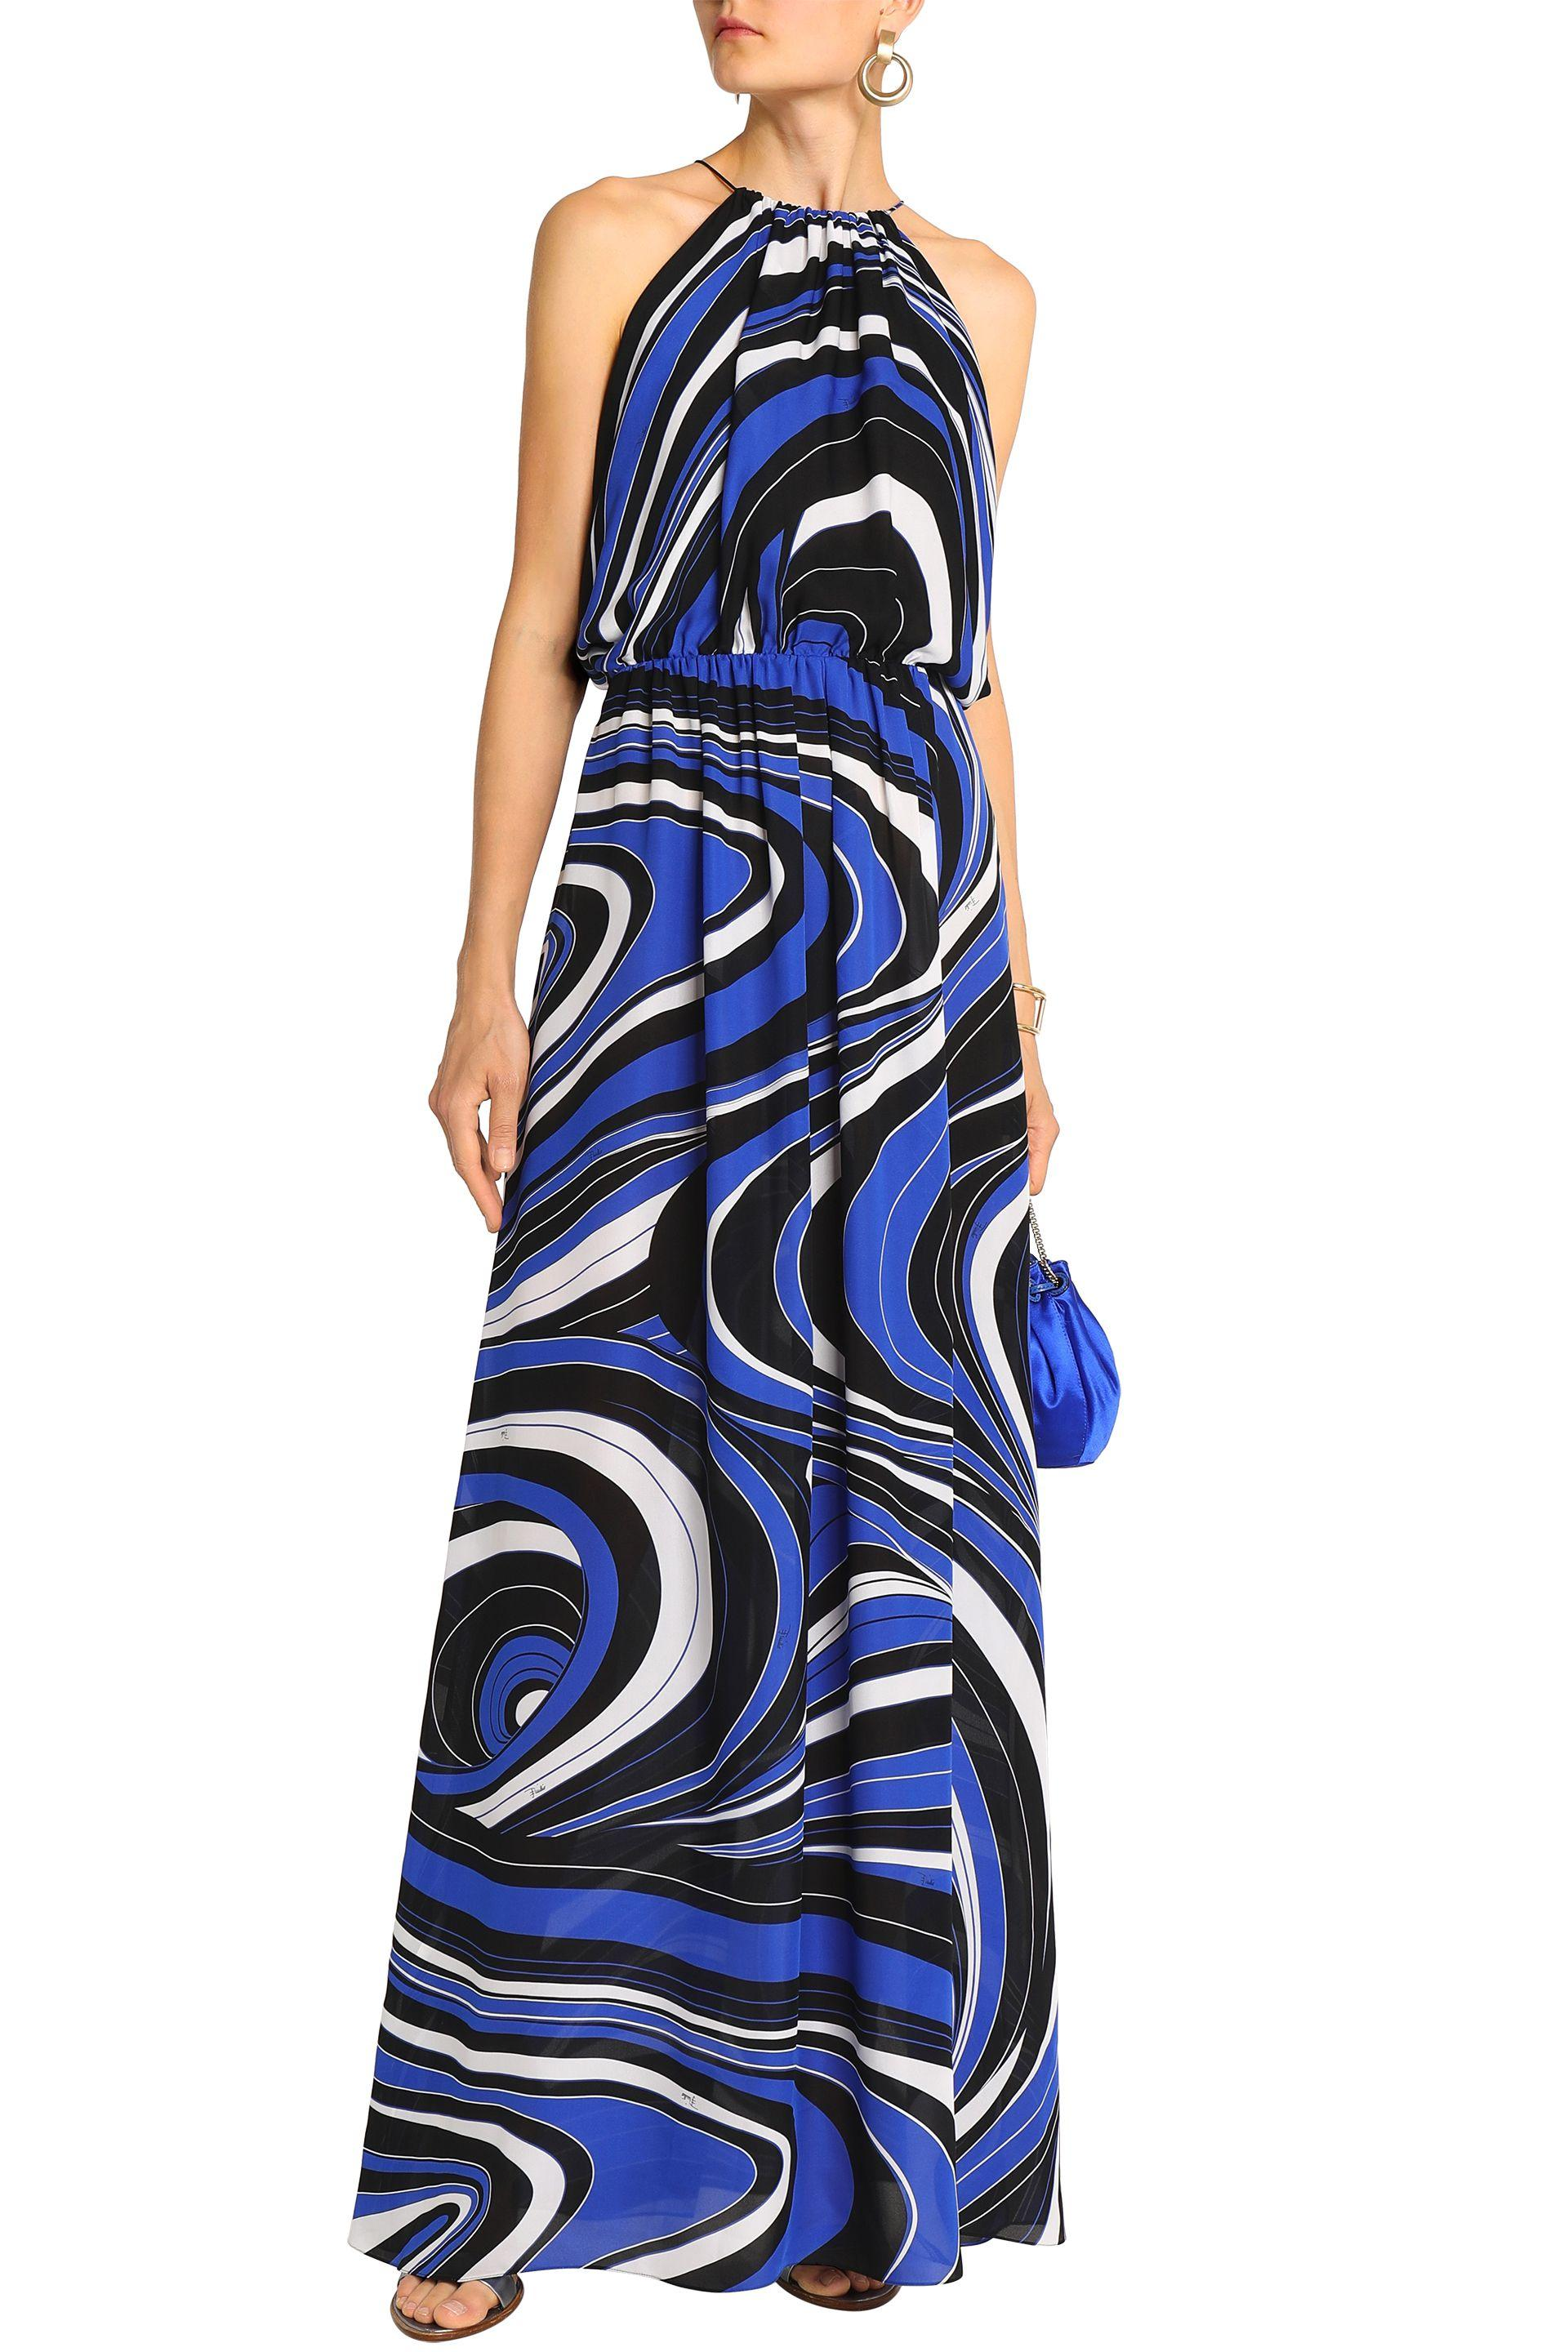 bb7c4d9ae548 Lyst - Emilio Pucci Woman Sequin-embellished Tulle-trimmed Printed ...